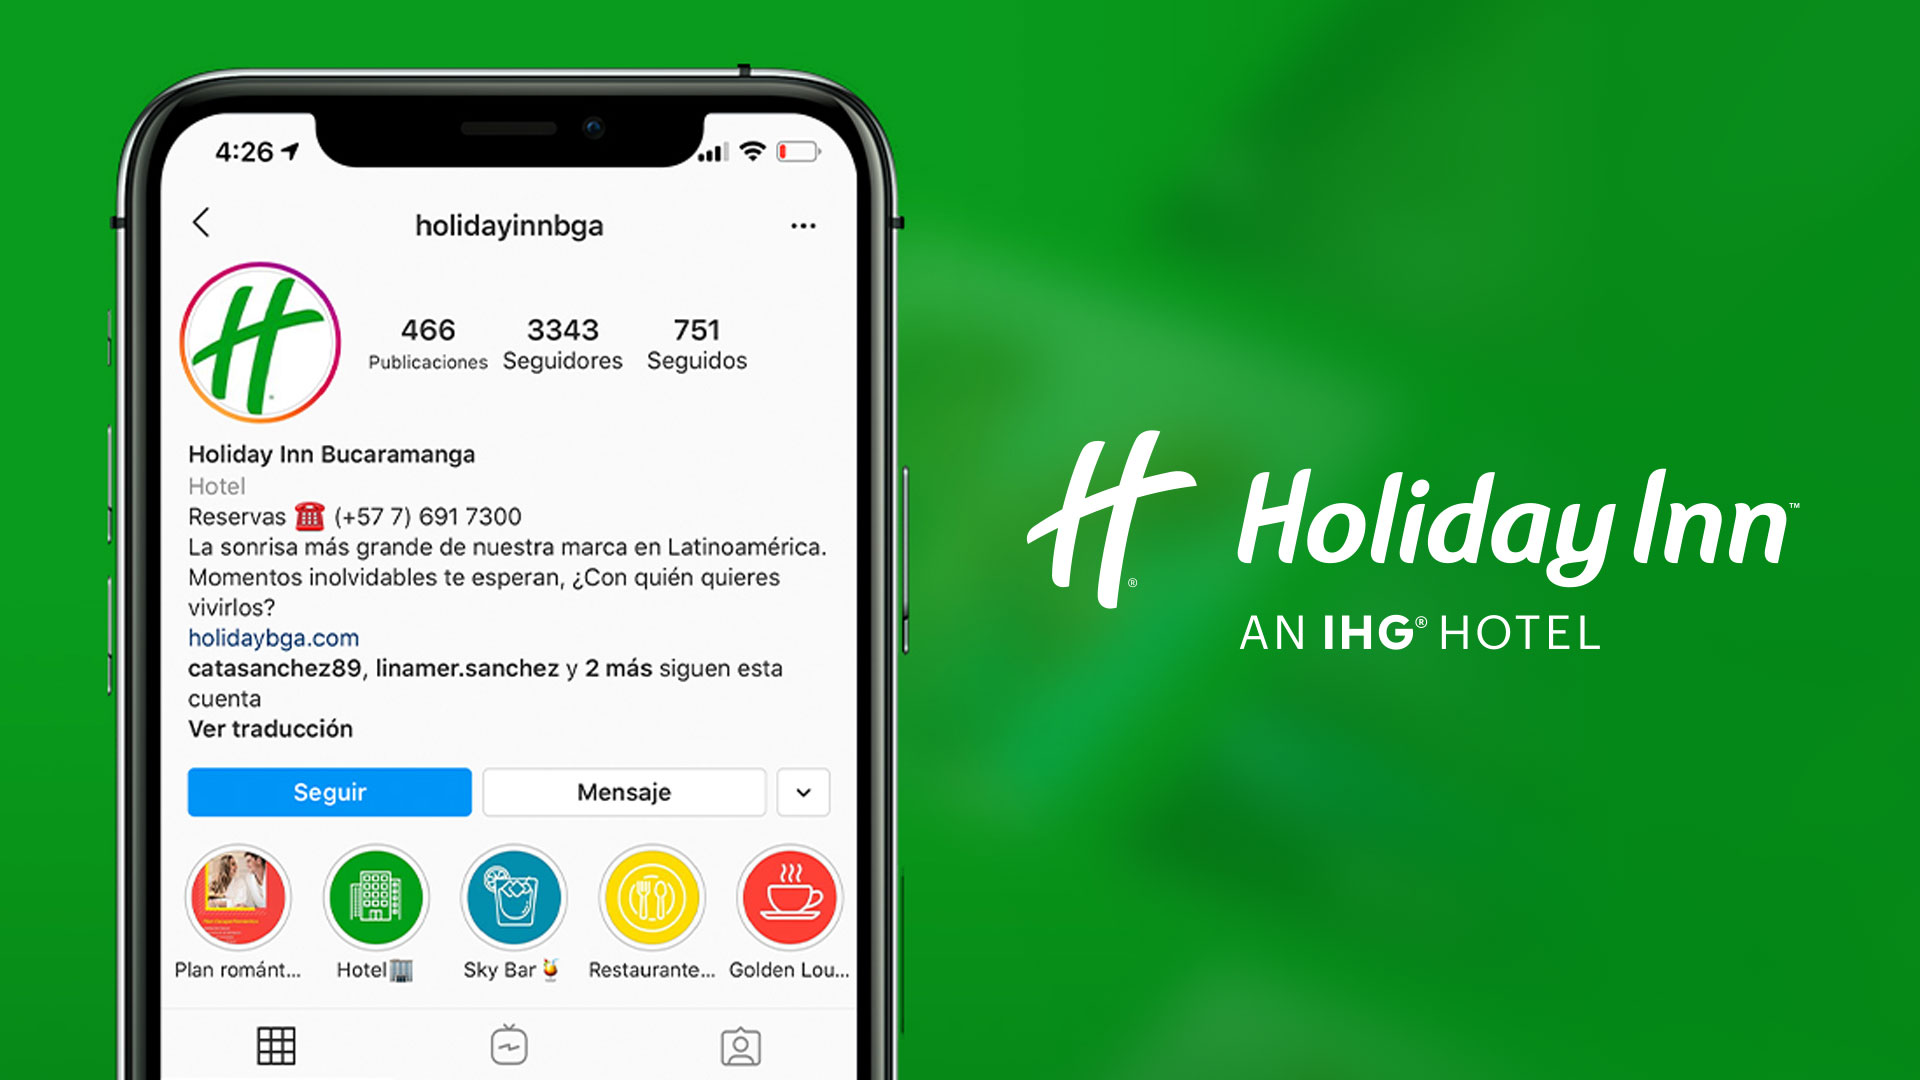 Marketing Digital para el HolidayInn - MAD agencia